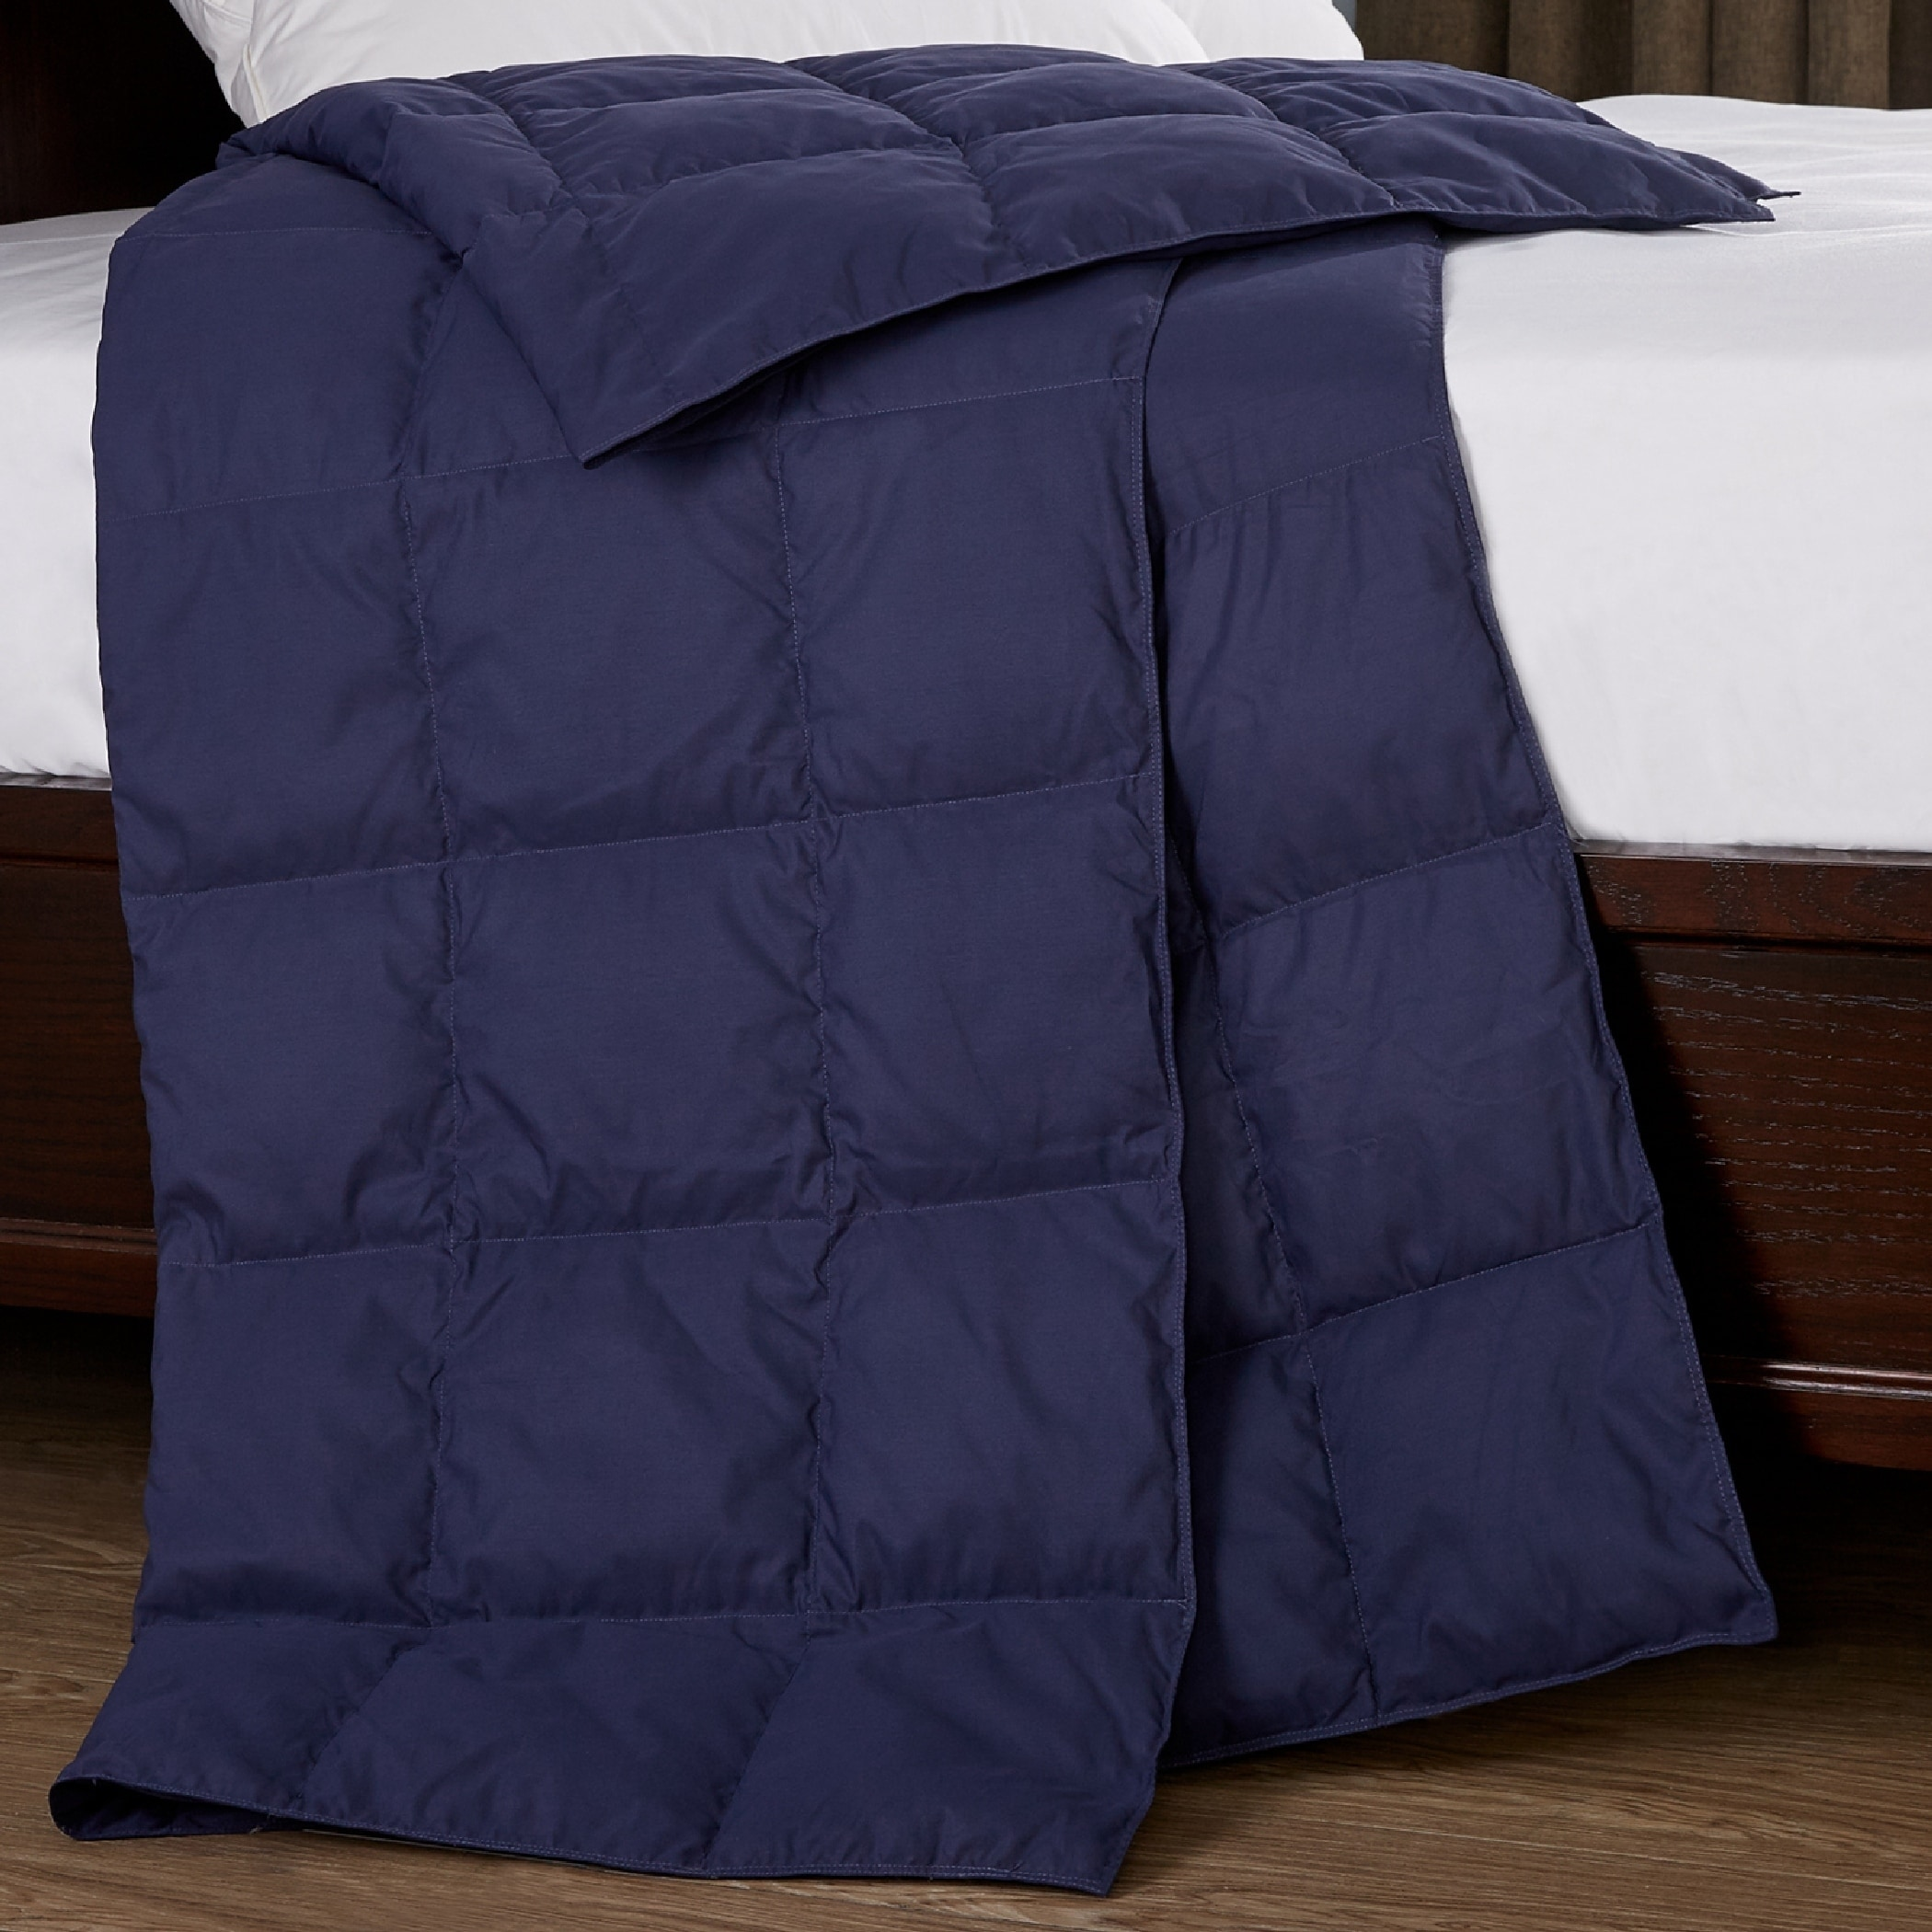 St. James Home Packable Down Throw Blanket in Blue (As Is...